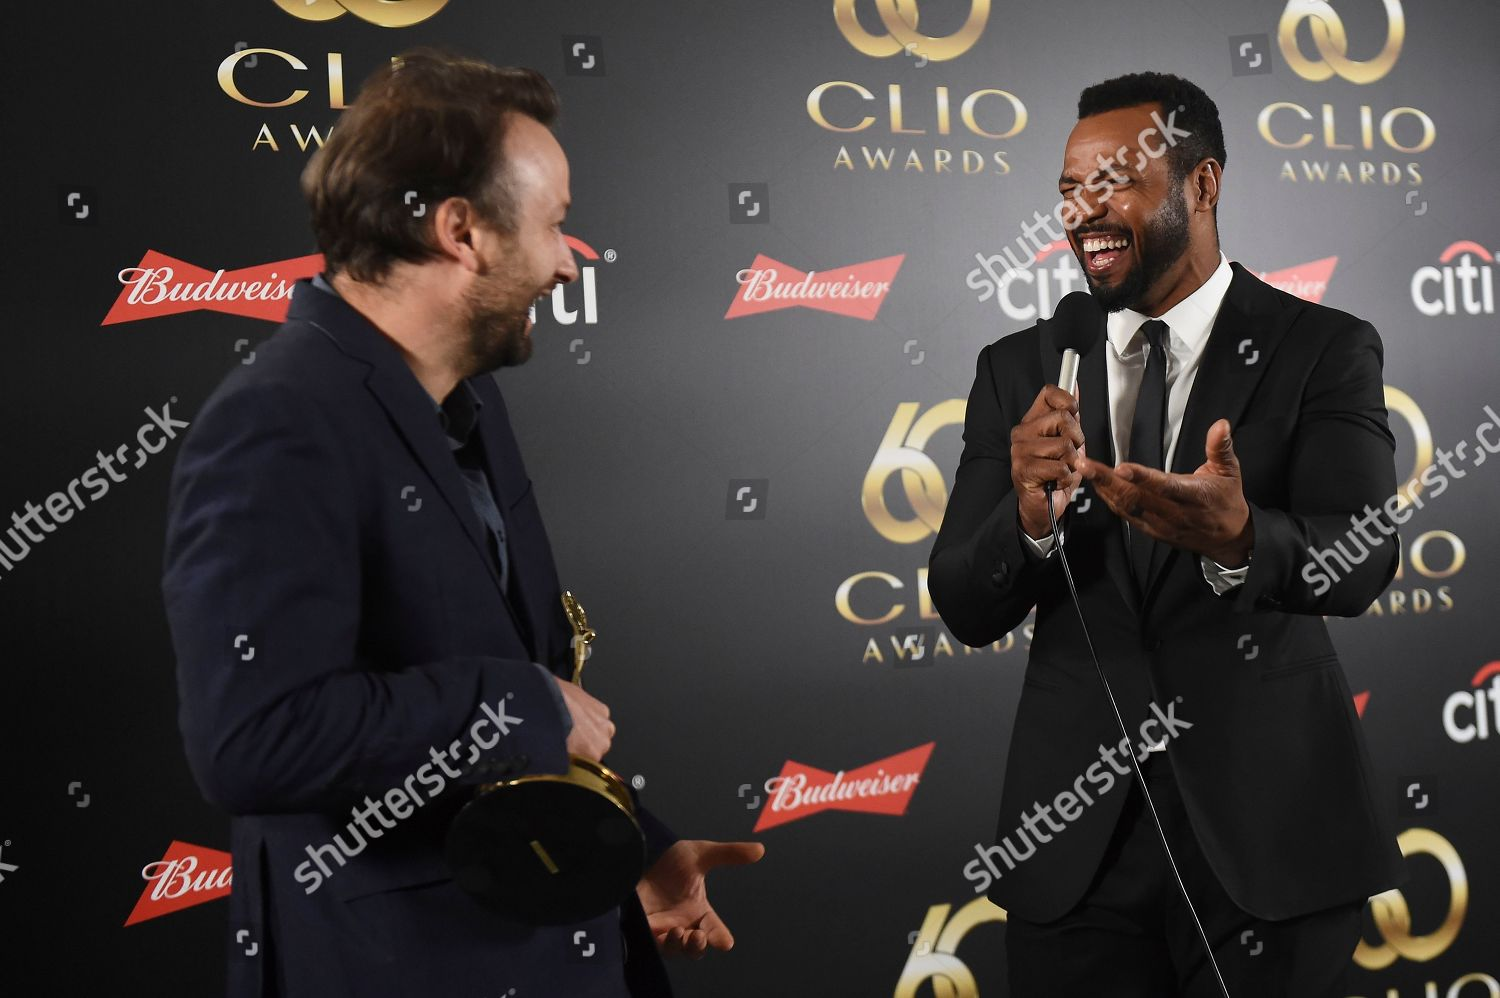 Stock-foto af 2019 Clio Awards 60th Anniversary, New York, USA - 25 Sep 2019